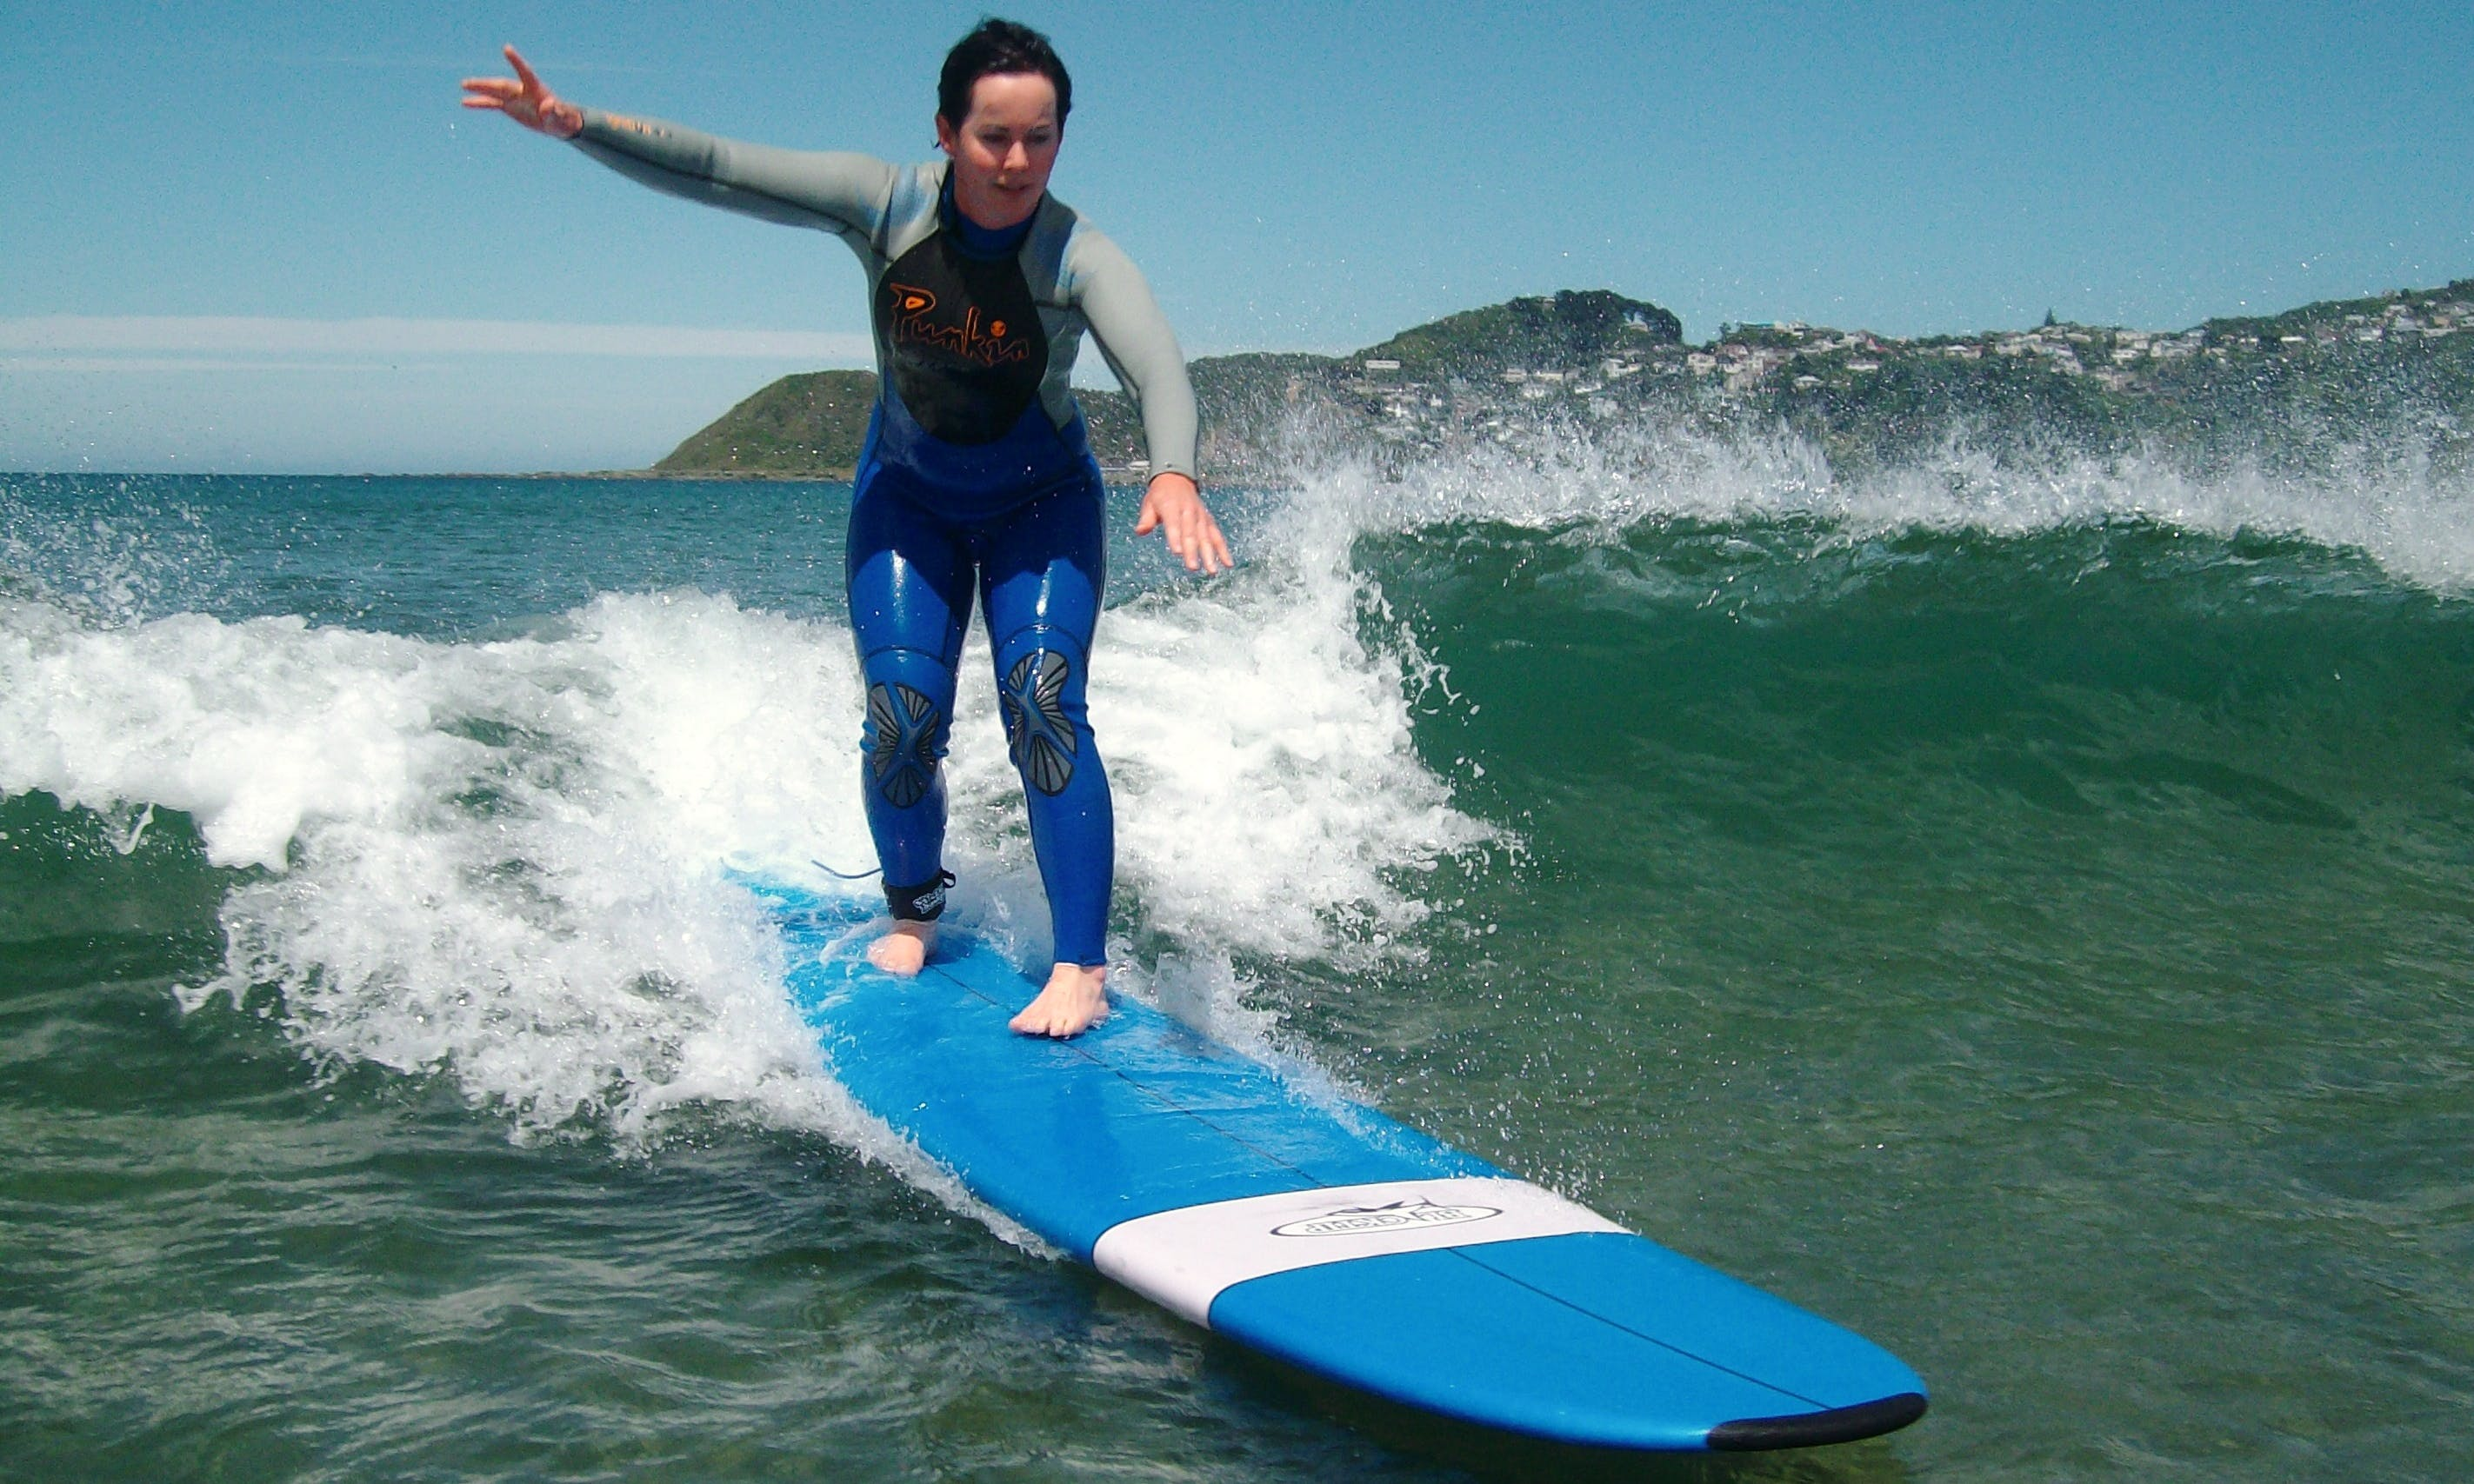 Surfing in Kaikoura - New Zealand